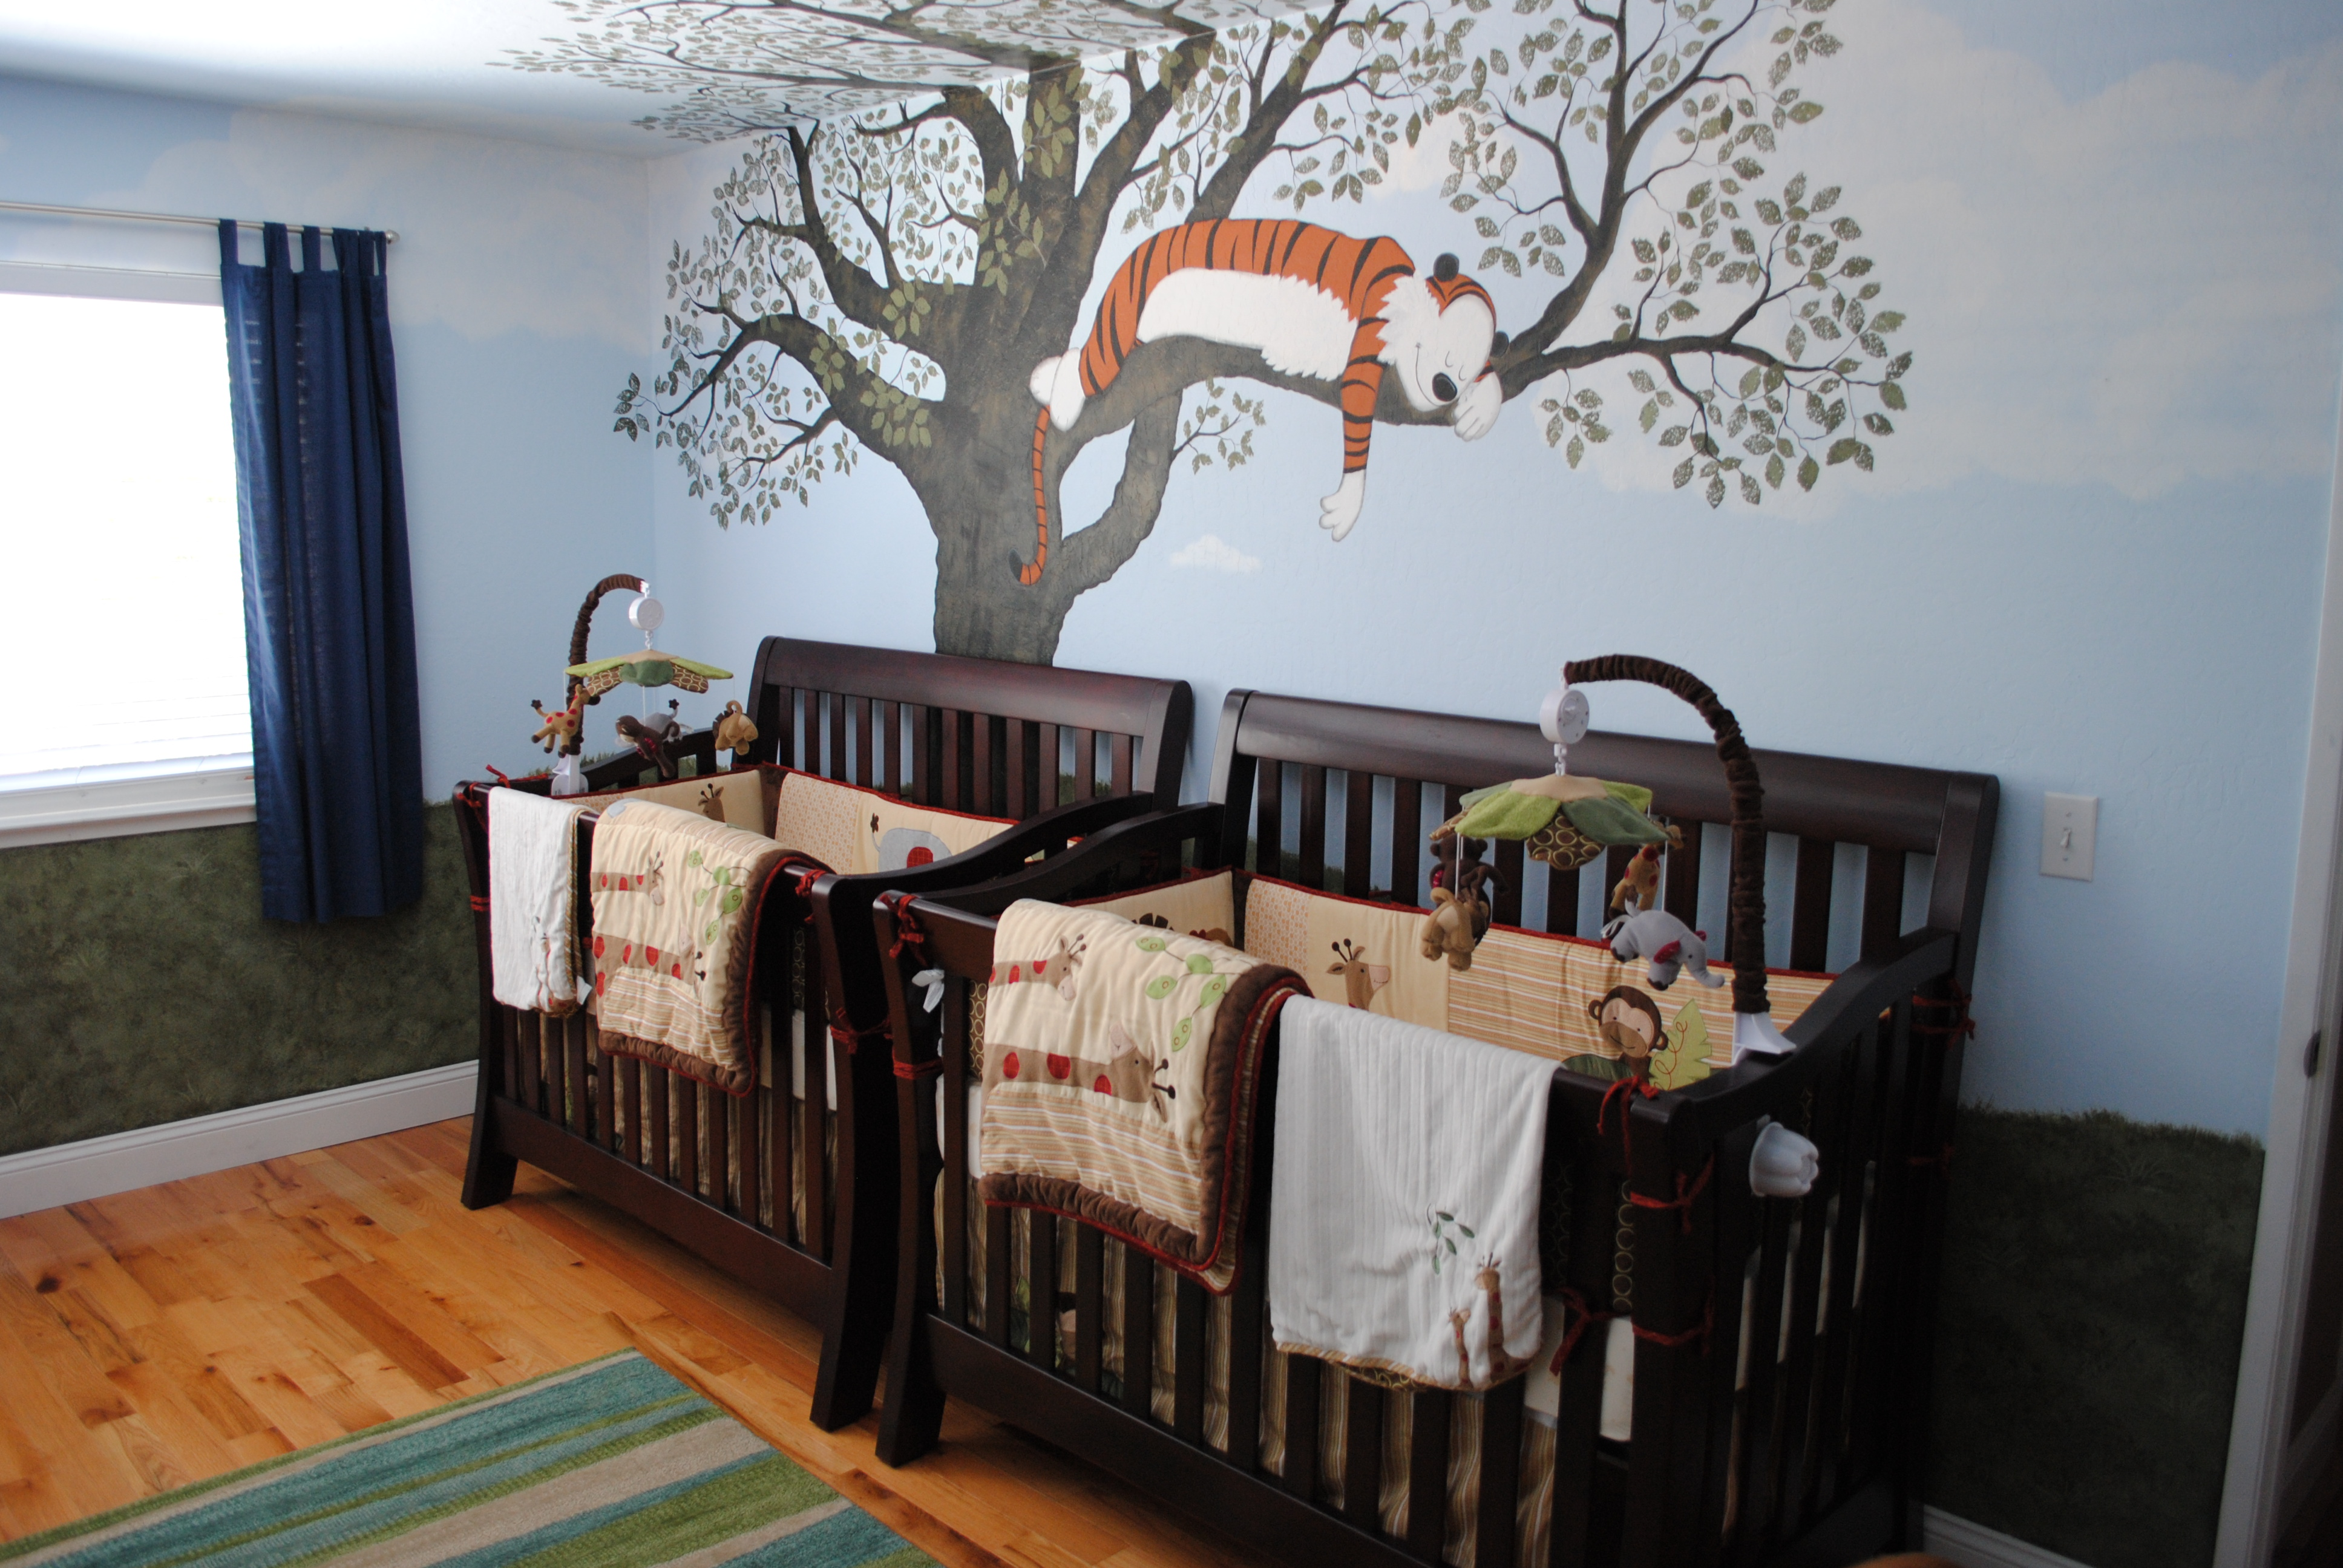 The jungle cruise lggraphixclient for Calvin and hobbes bedroom mural